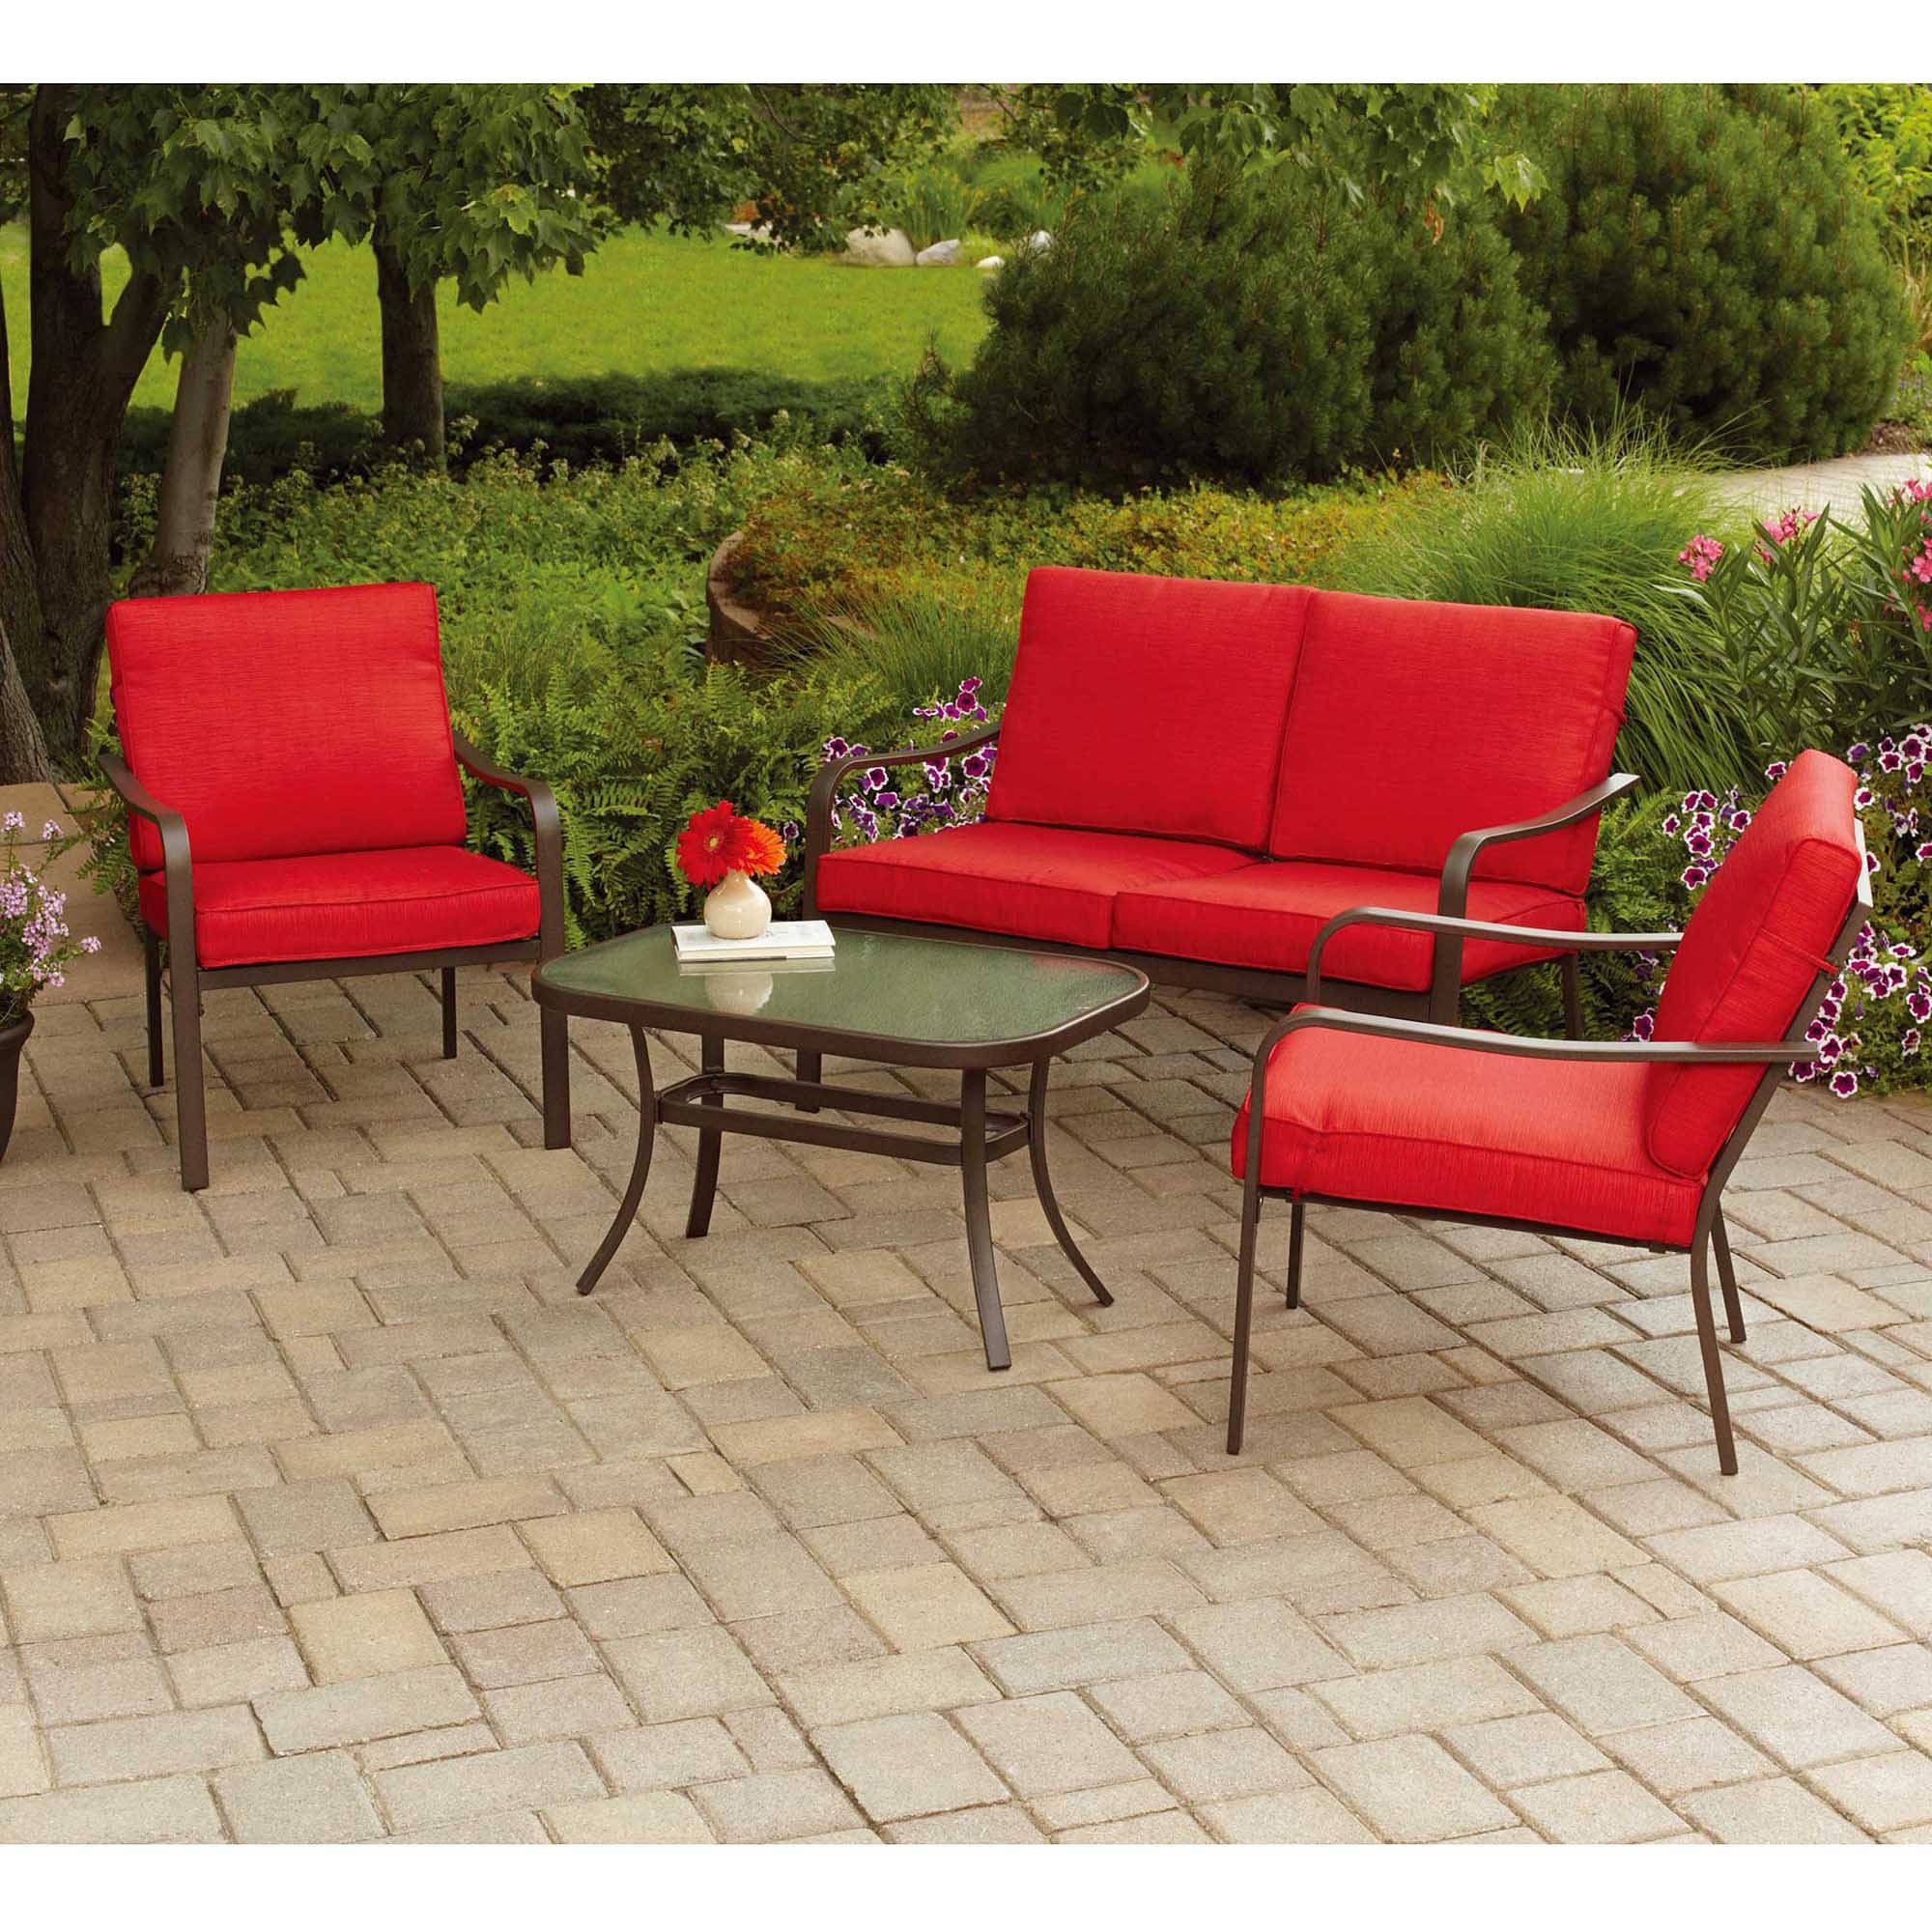 Patio Conversation Sets At Walmart Within Well Known Mainstays Stanton Cushioned 4 Piece Patio Conversation Set, Red (View 17 of 20)